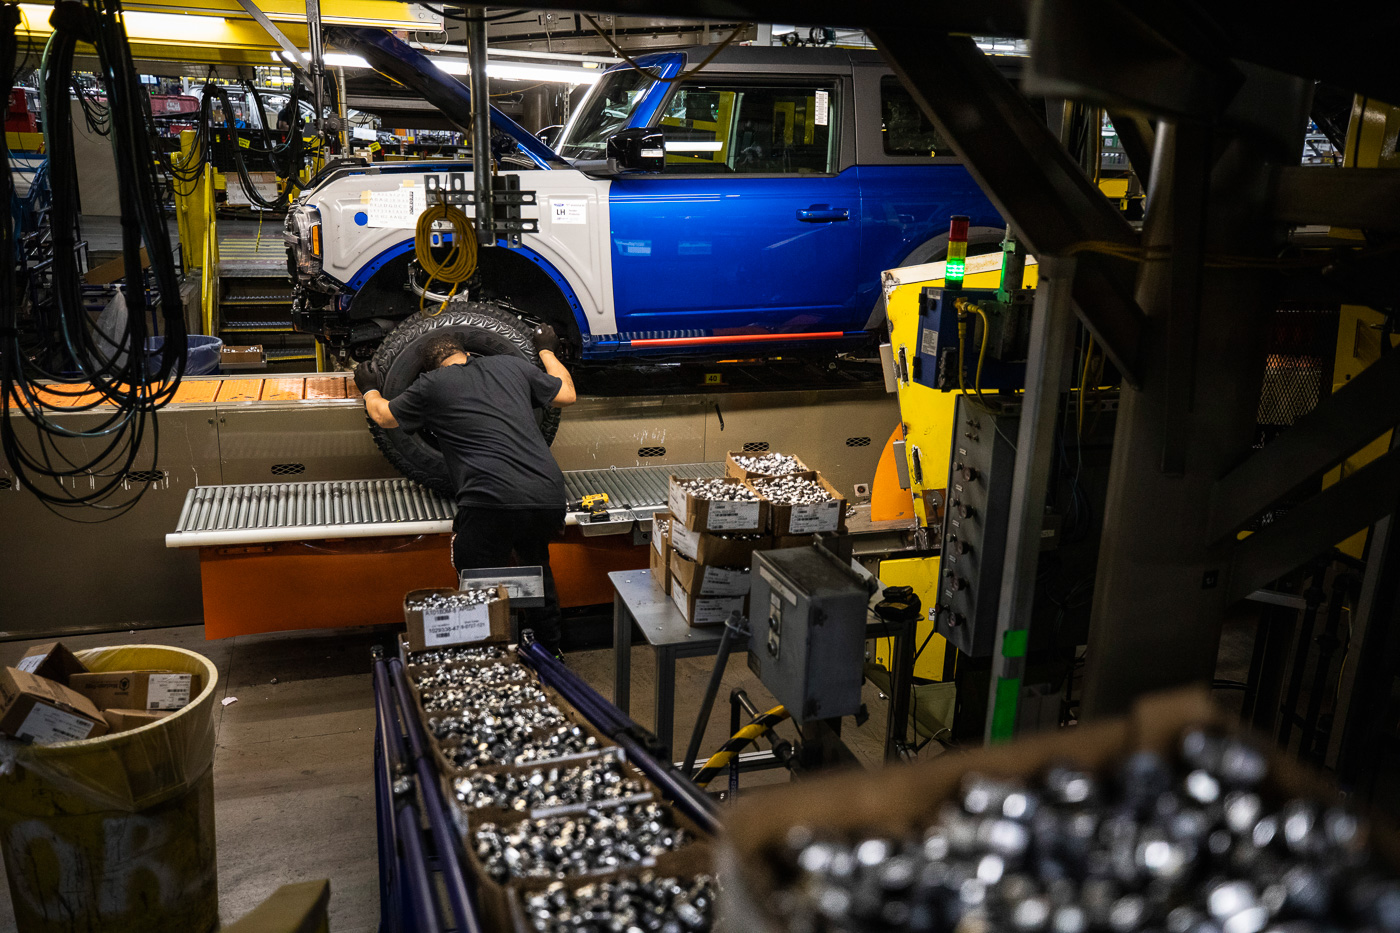 2021-bronco-production-michigan-assembly-plant-8.jpg